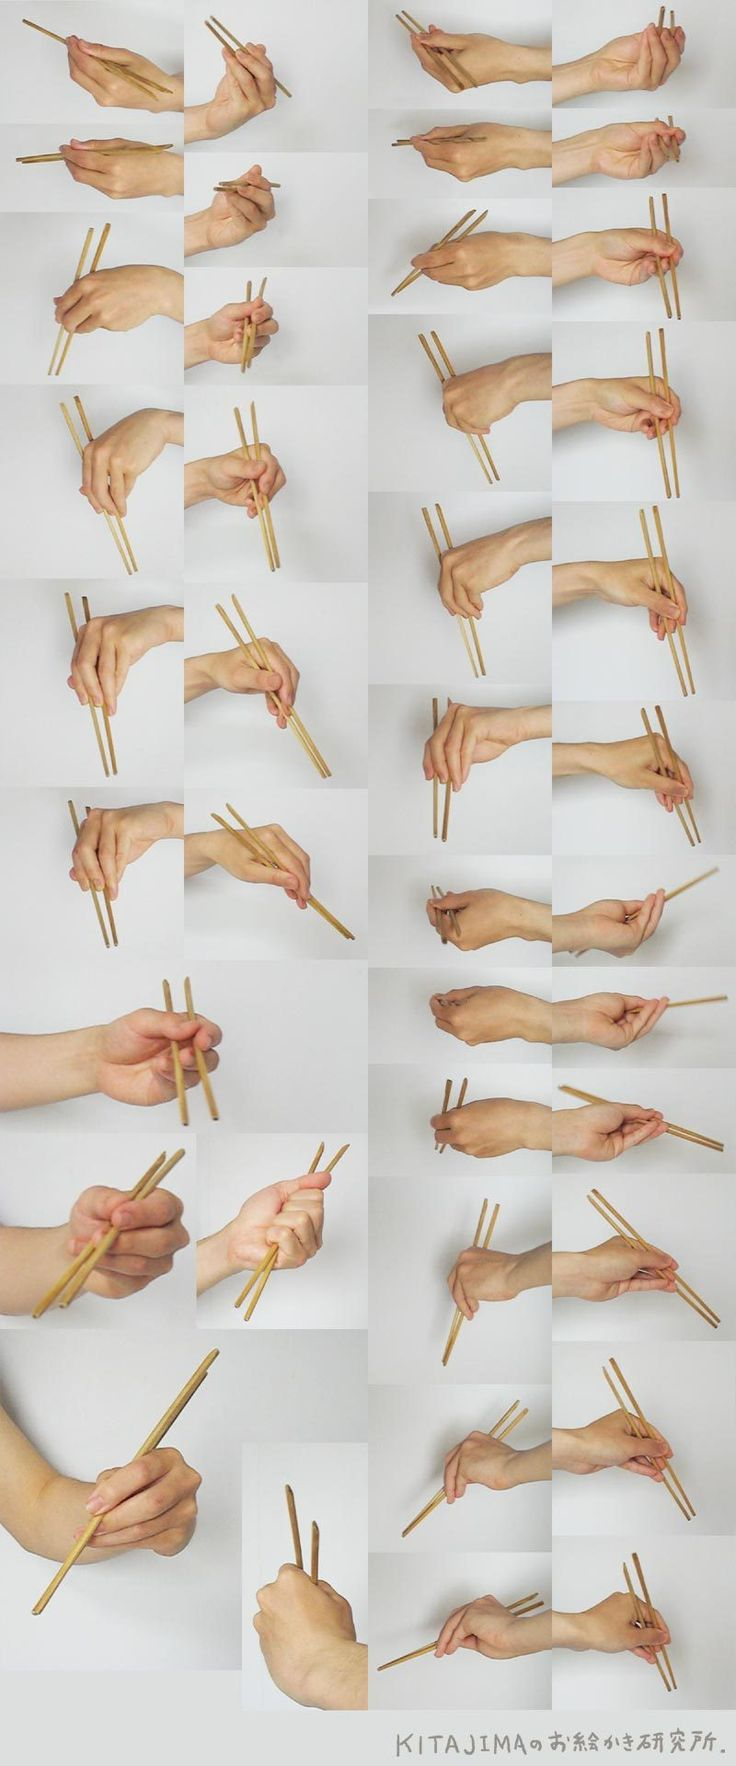 Use chopsticks with left hand